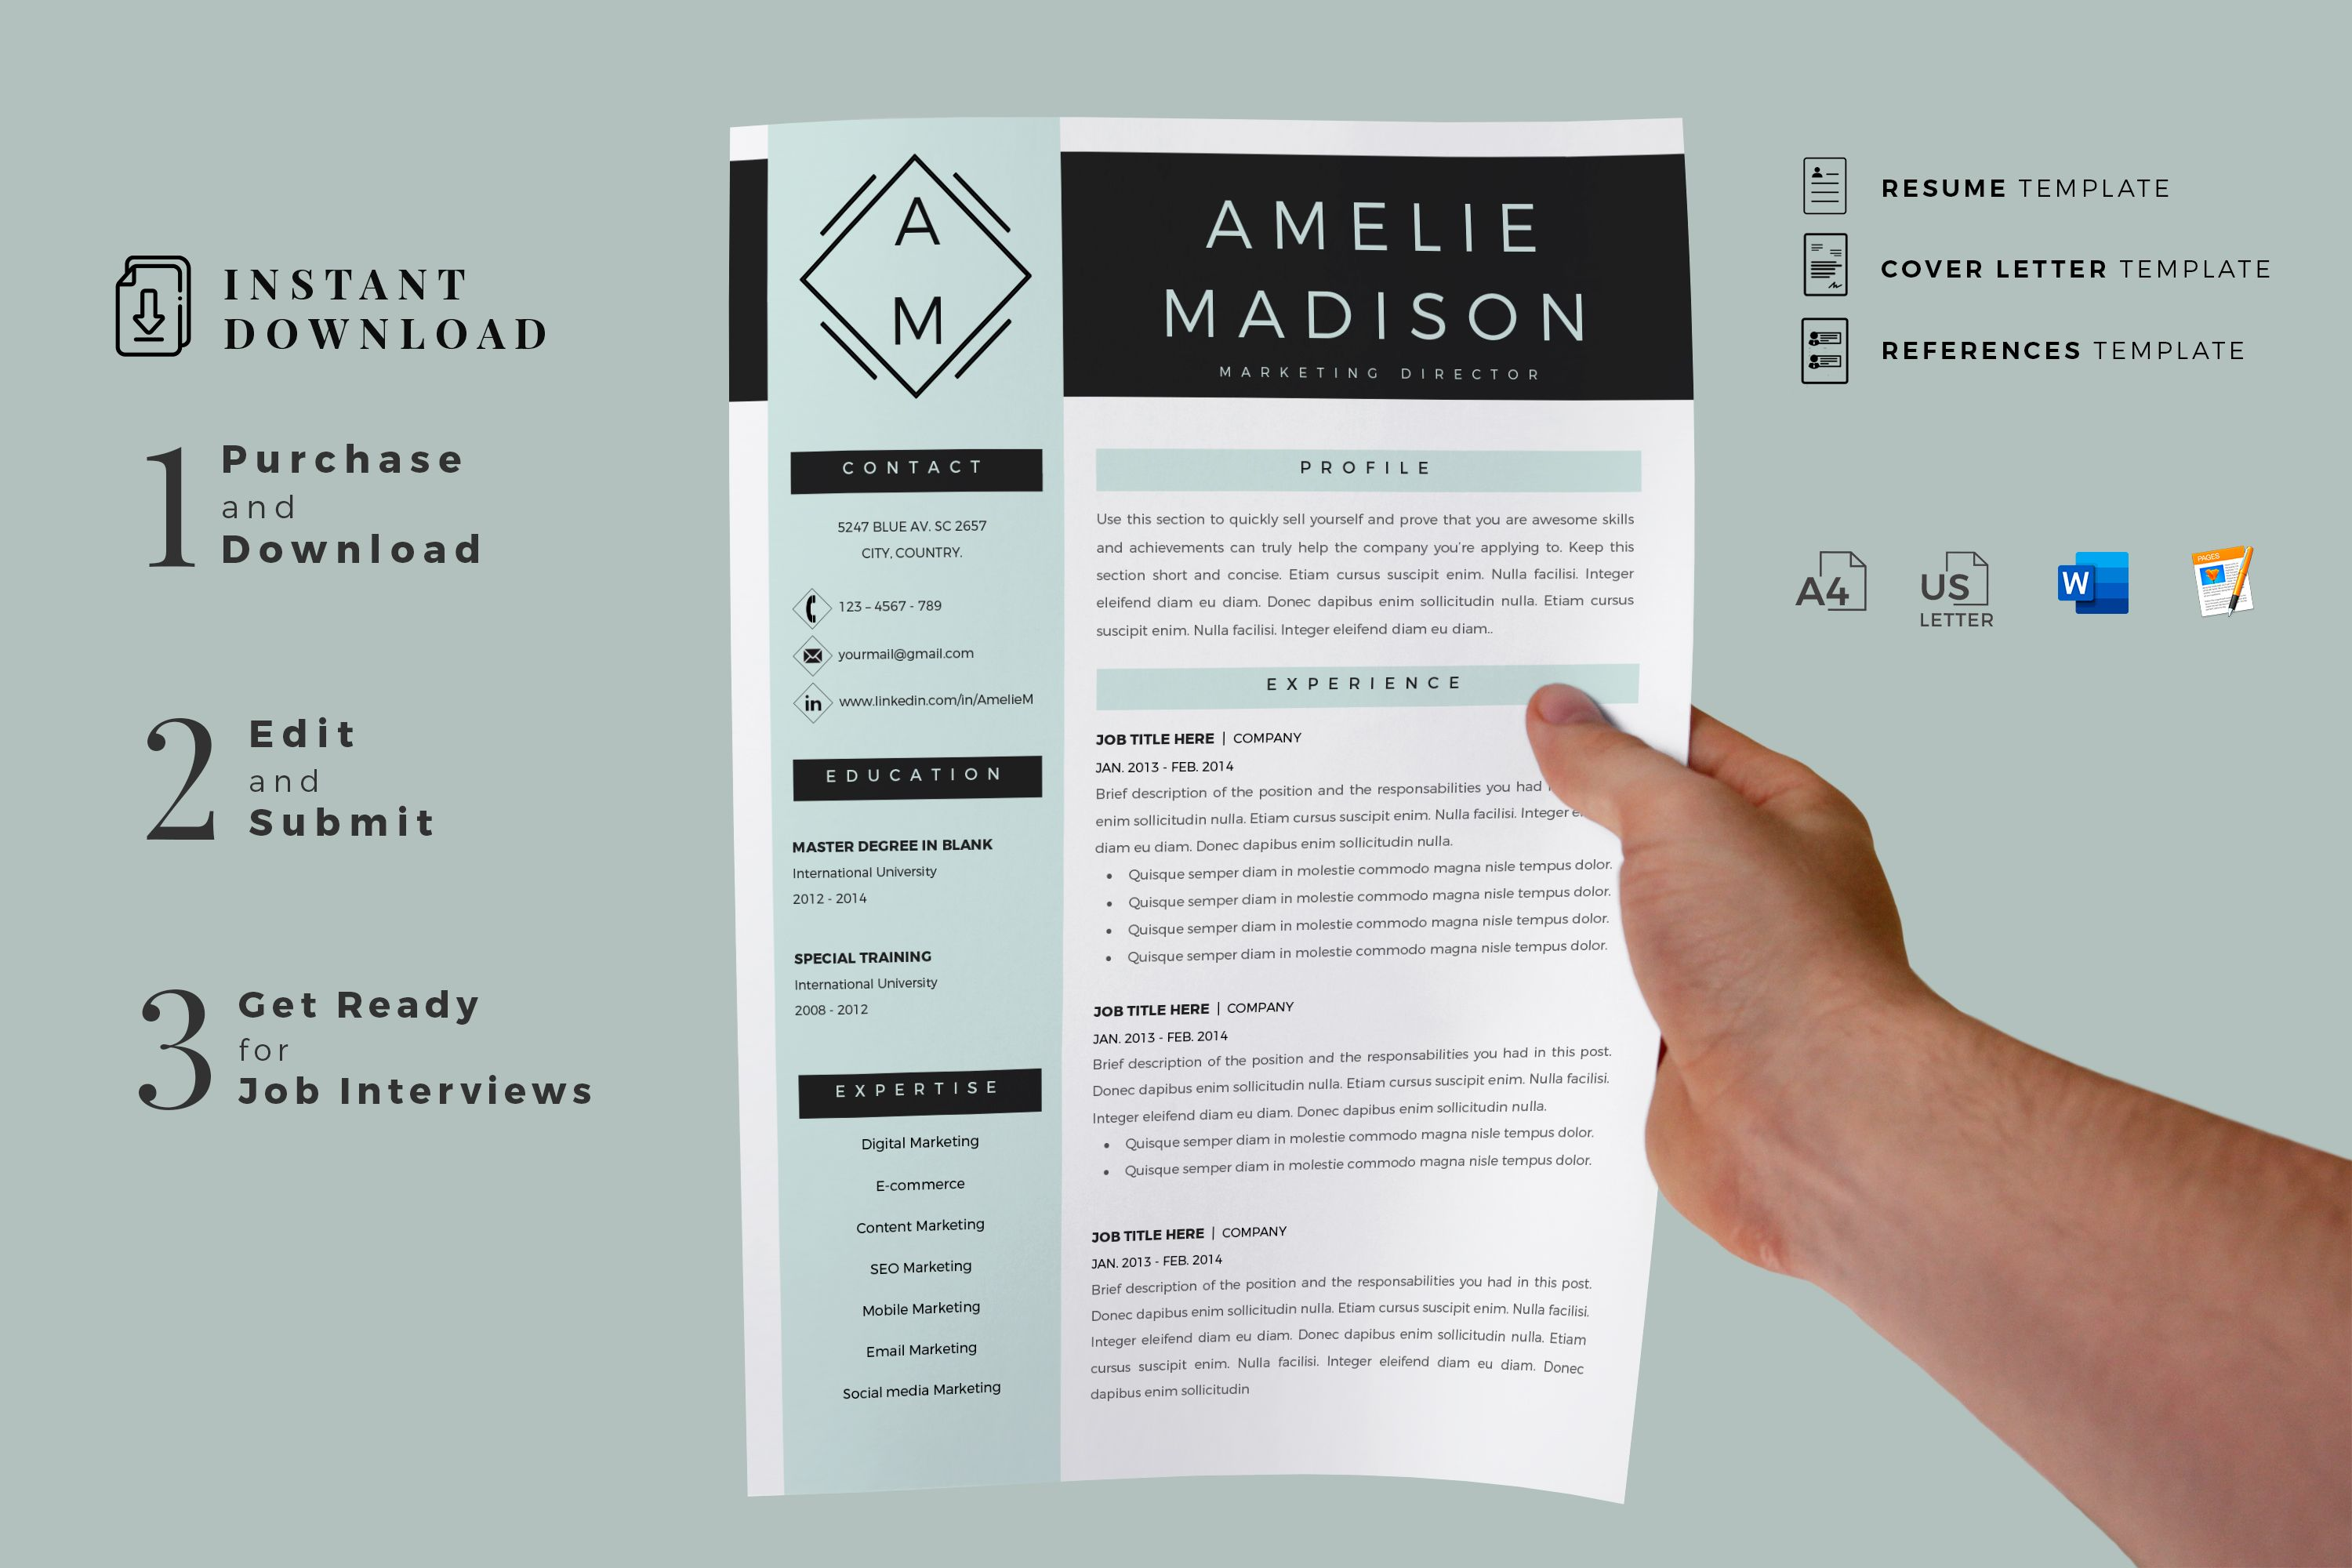 Creative Resume Templates For Ms Word And Mac Pages Professional Resume Templates And Matching Cove Resume Template Cover Letter Format Resume Design Template